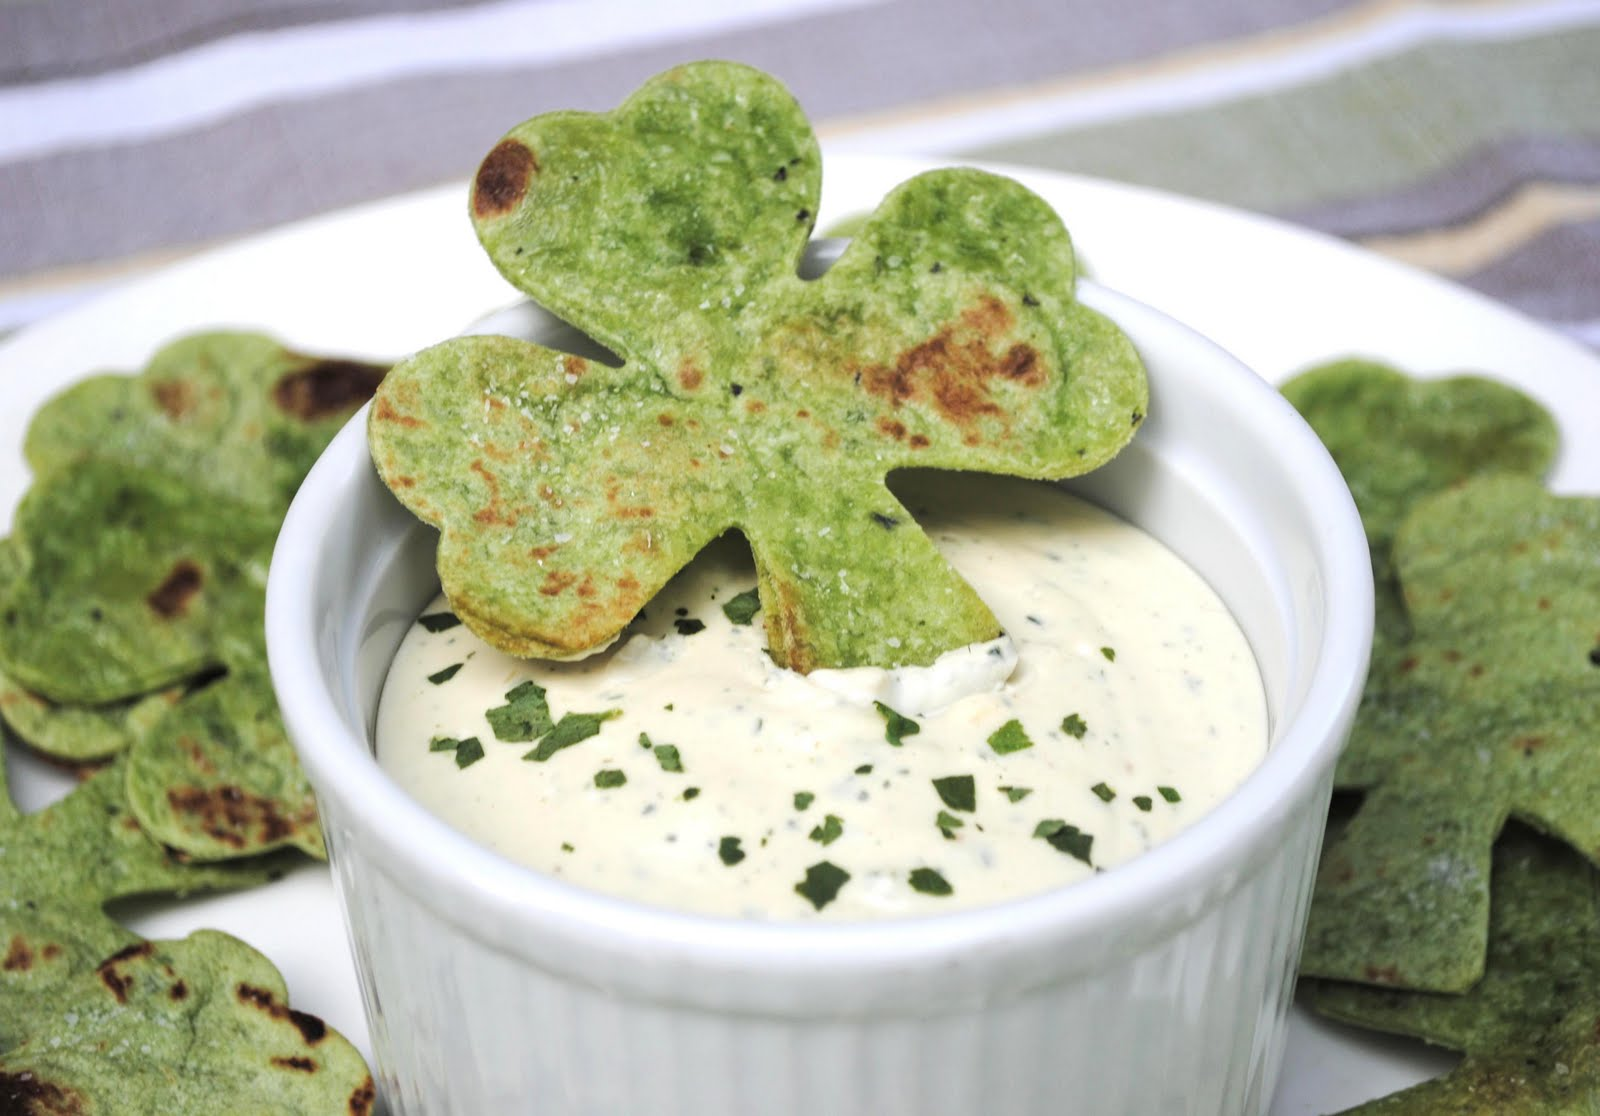 Krisztina Williams: Shamrock-Shaped Party Food for St. Patrick's Day